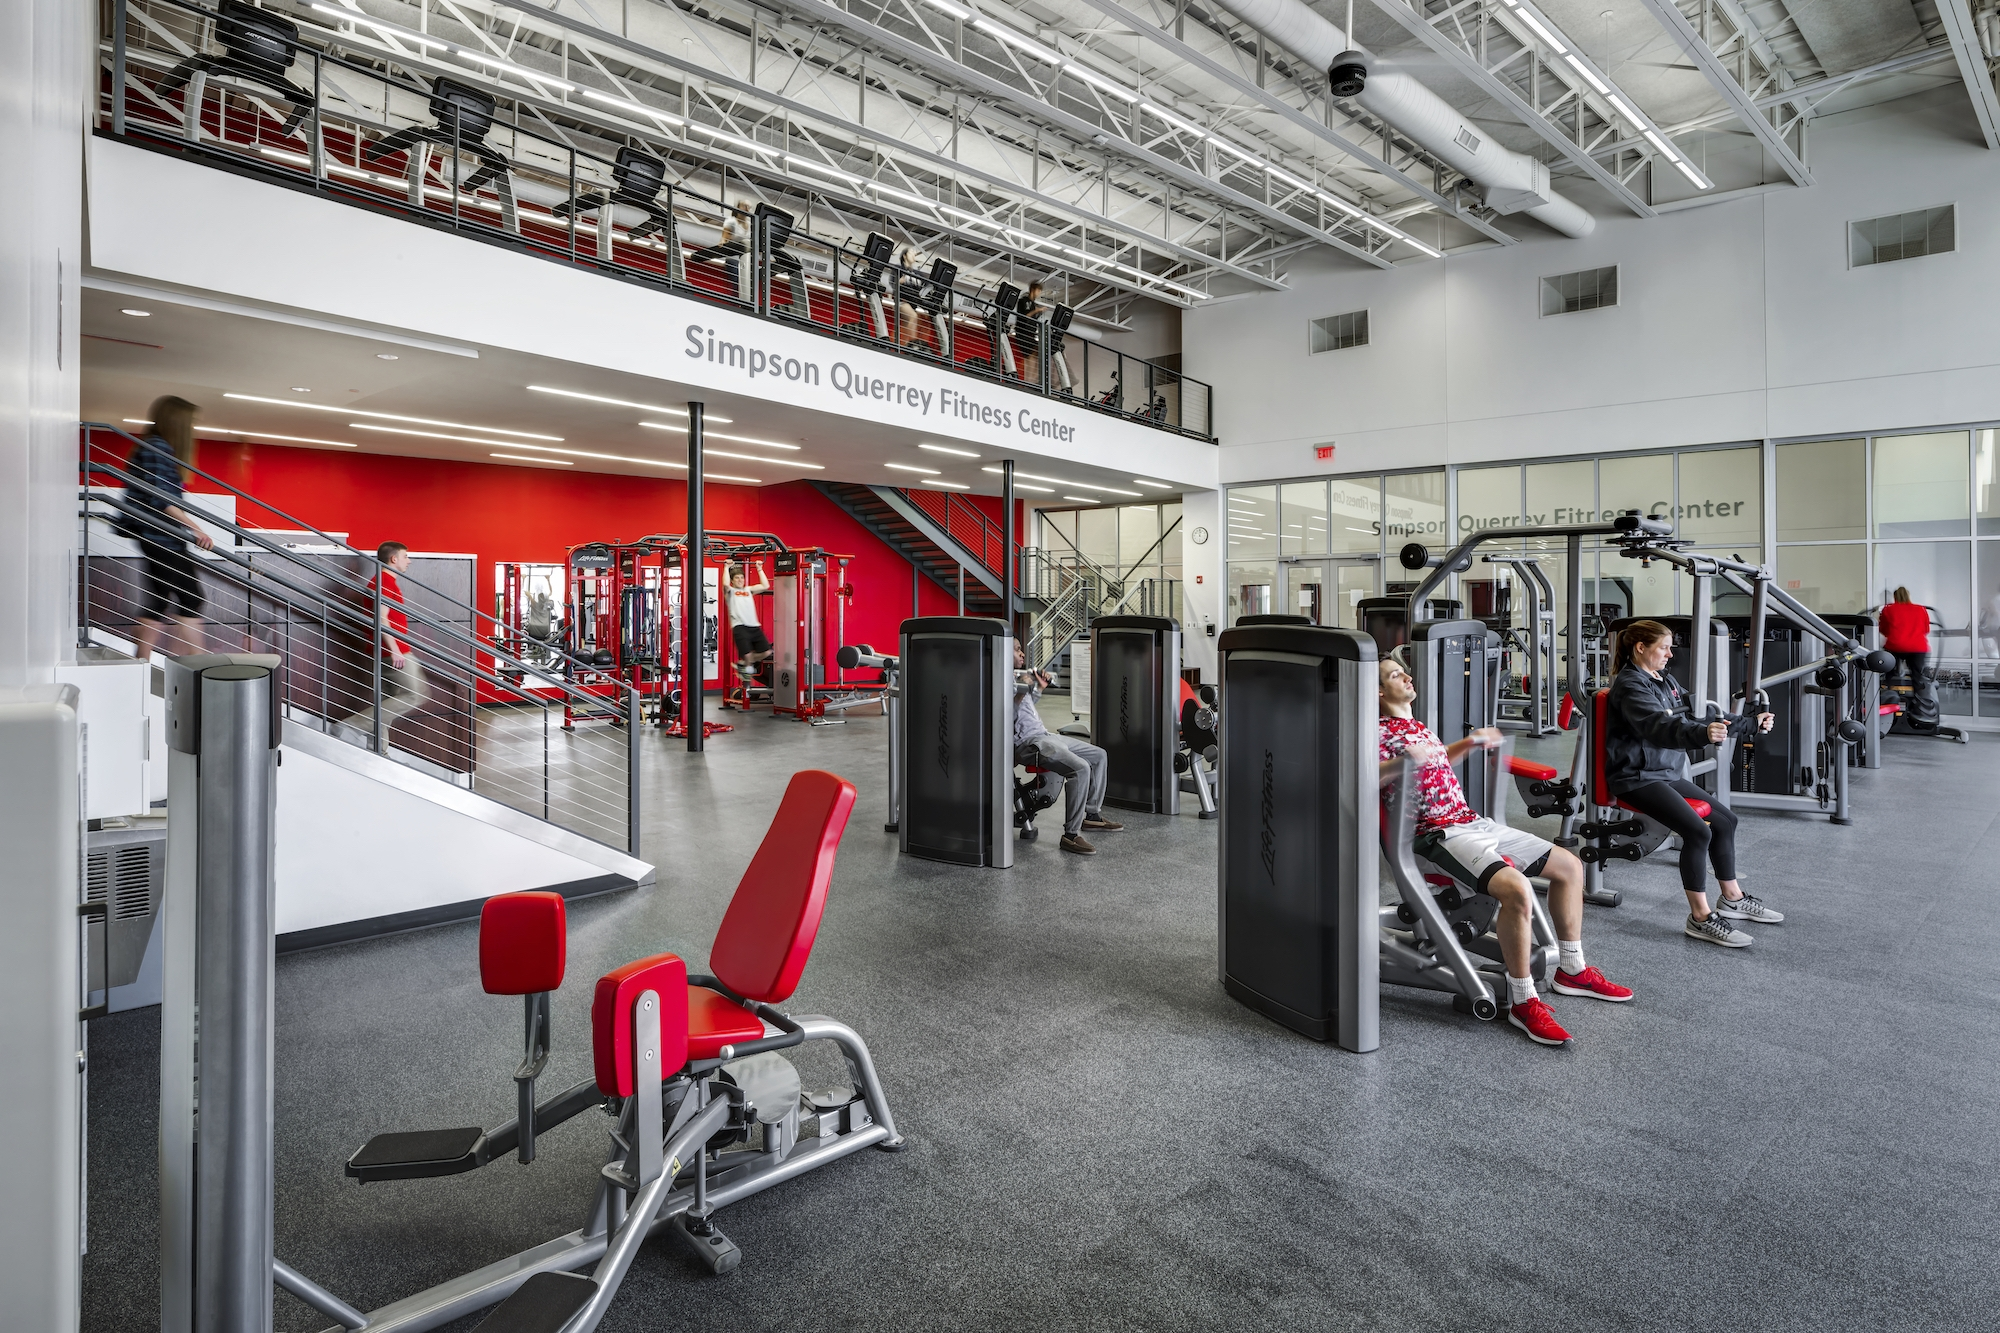 Edwards Gym & Simpson Querrey Fitness Center - Ohio Wesleyan University Delaware, Ohio